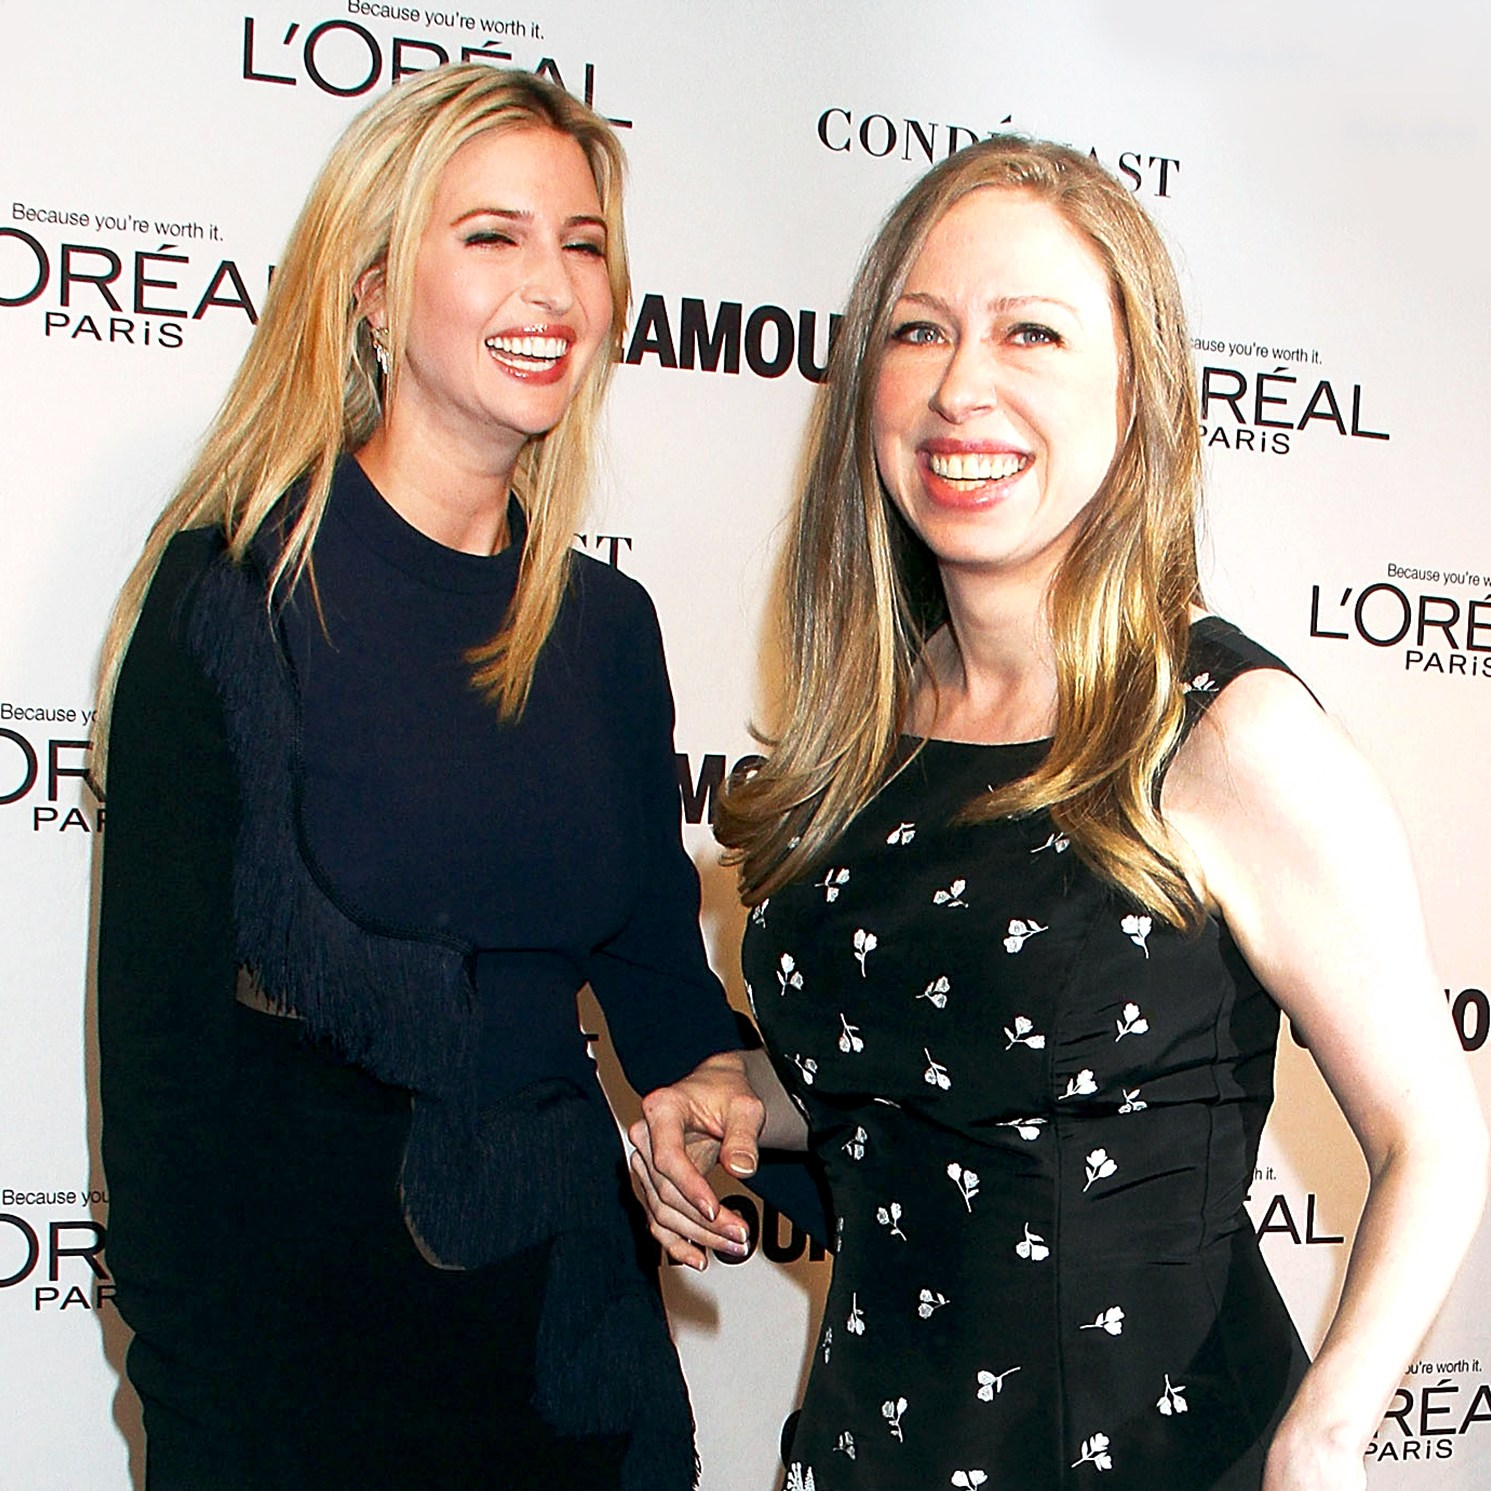 Ivanka Trump and Chelsea Clinton attend the 2014 Glamour Women Of The Year Awards at Carnegie Hall in New York City.